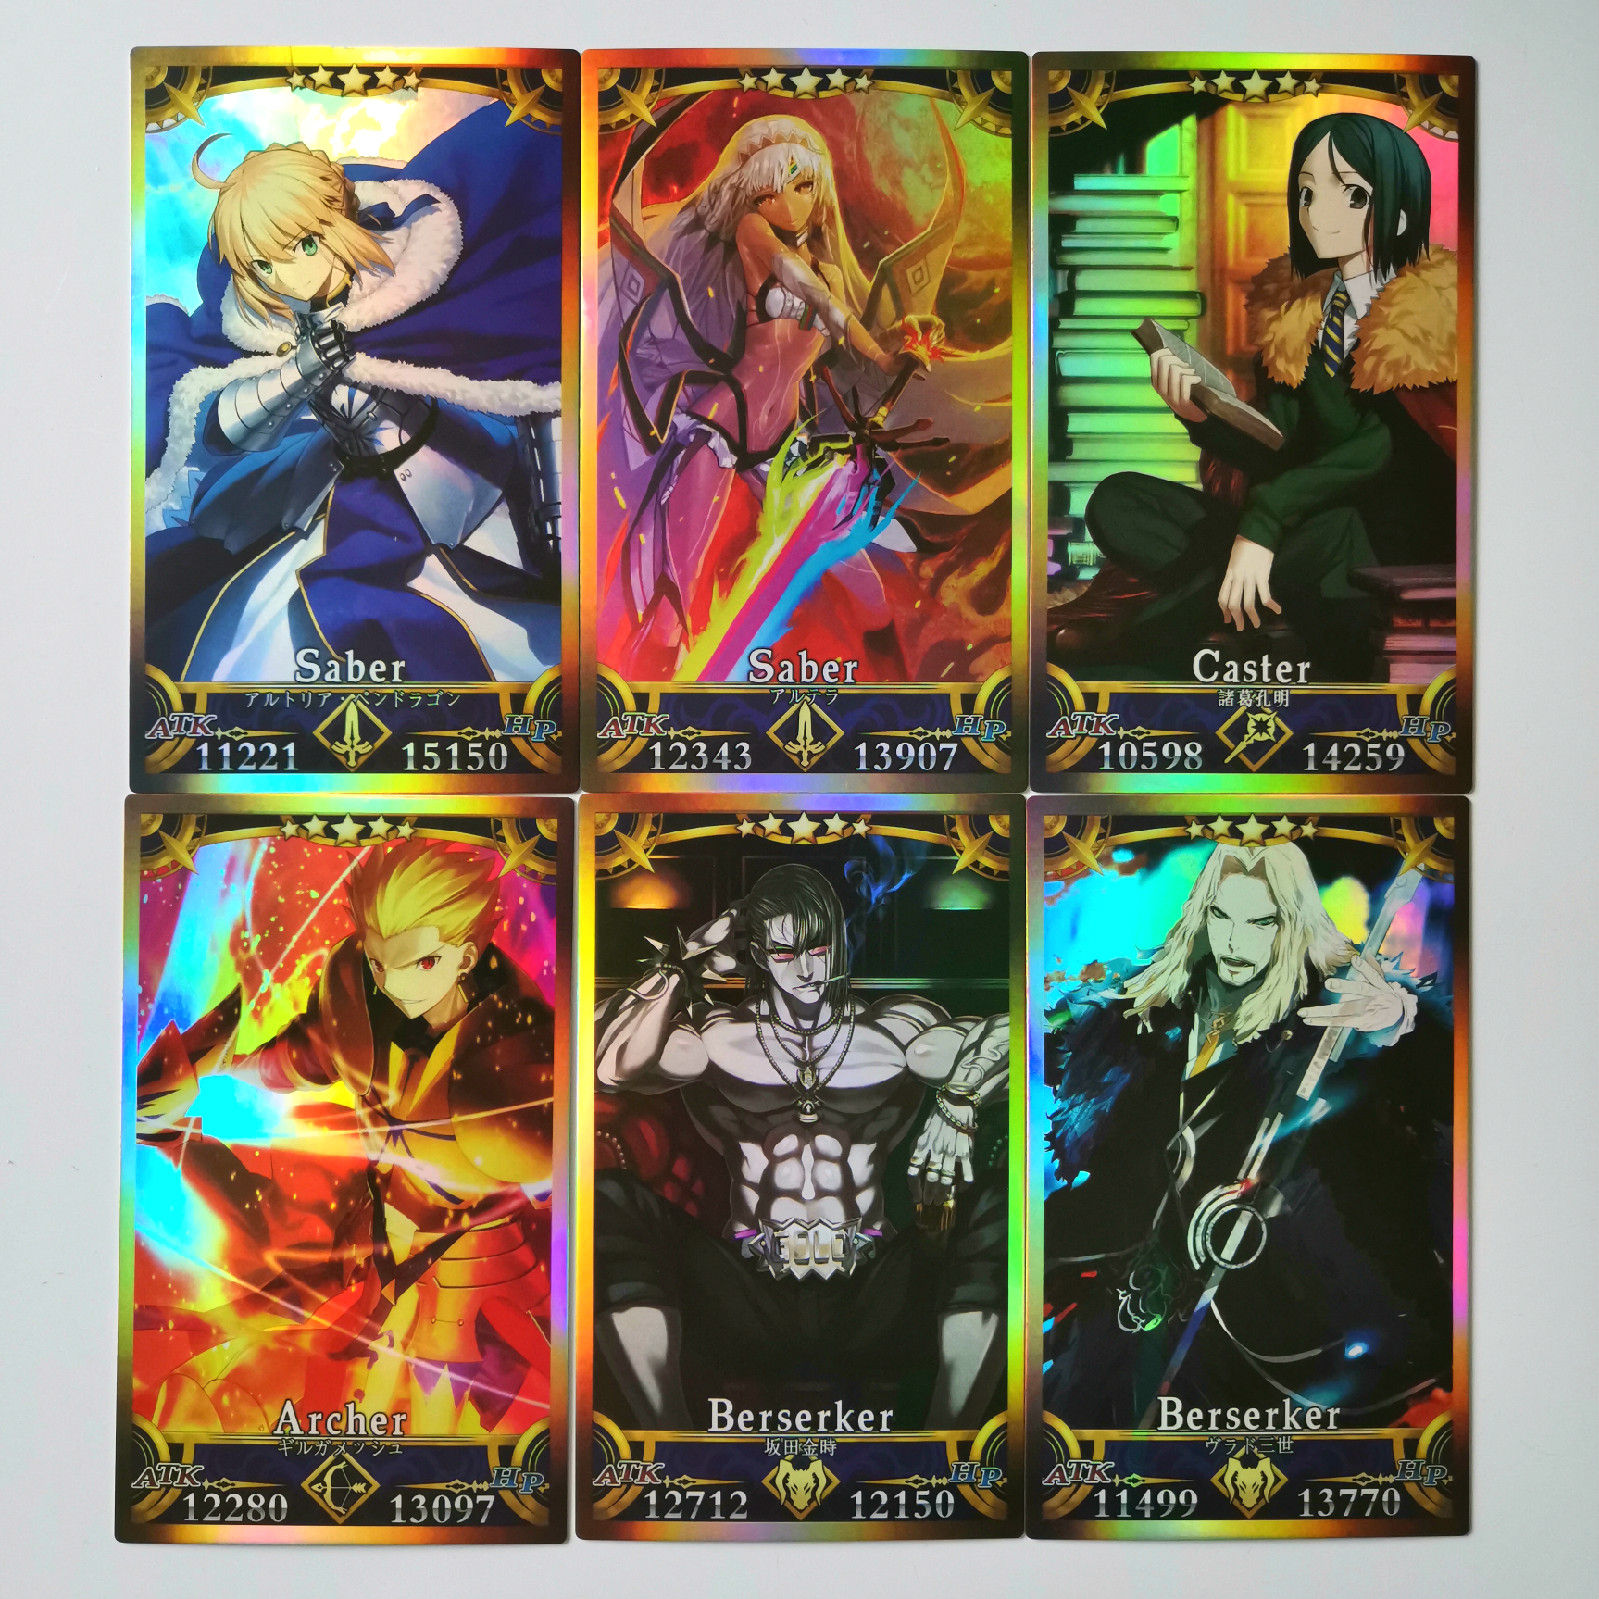 62pcs/set Fate/FGO The Holy Grail War Alter Toys Hobbies Hobby Collectibles Game Collection Anime Cards